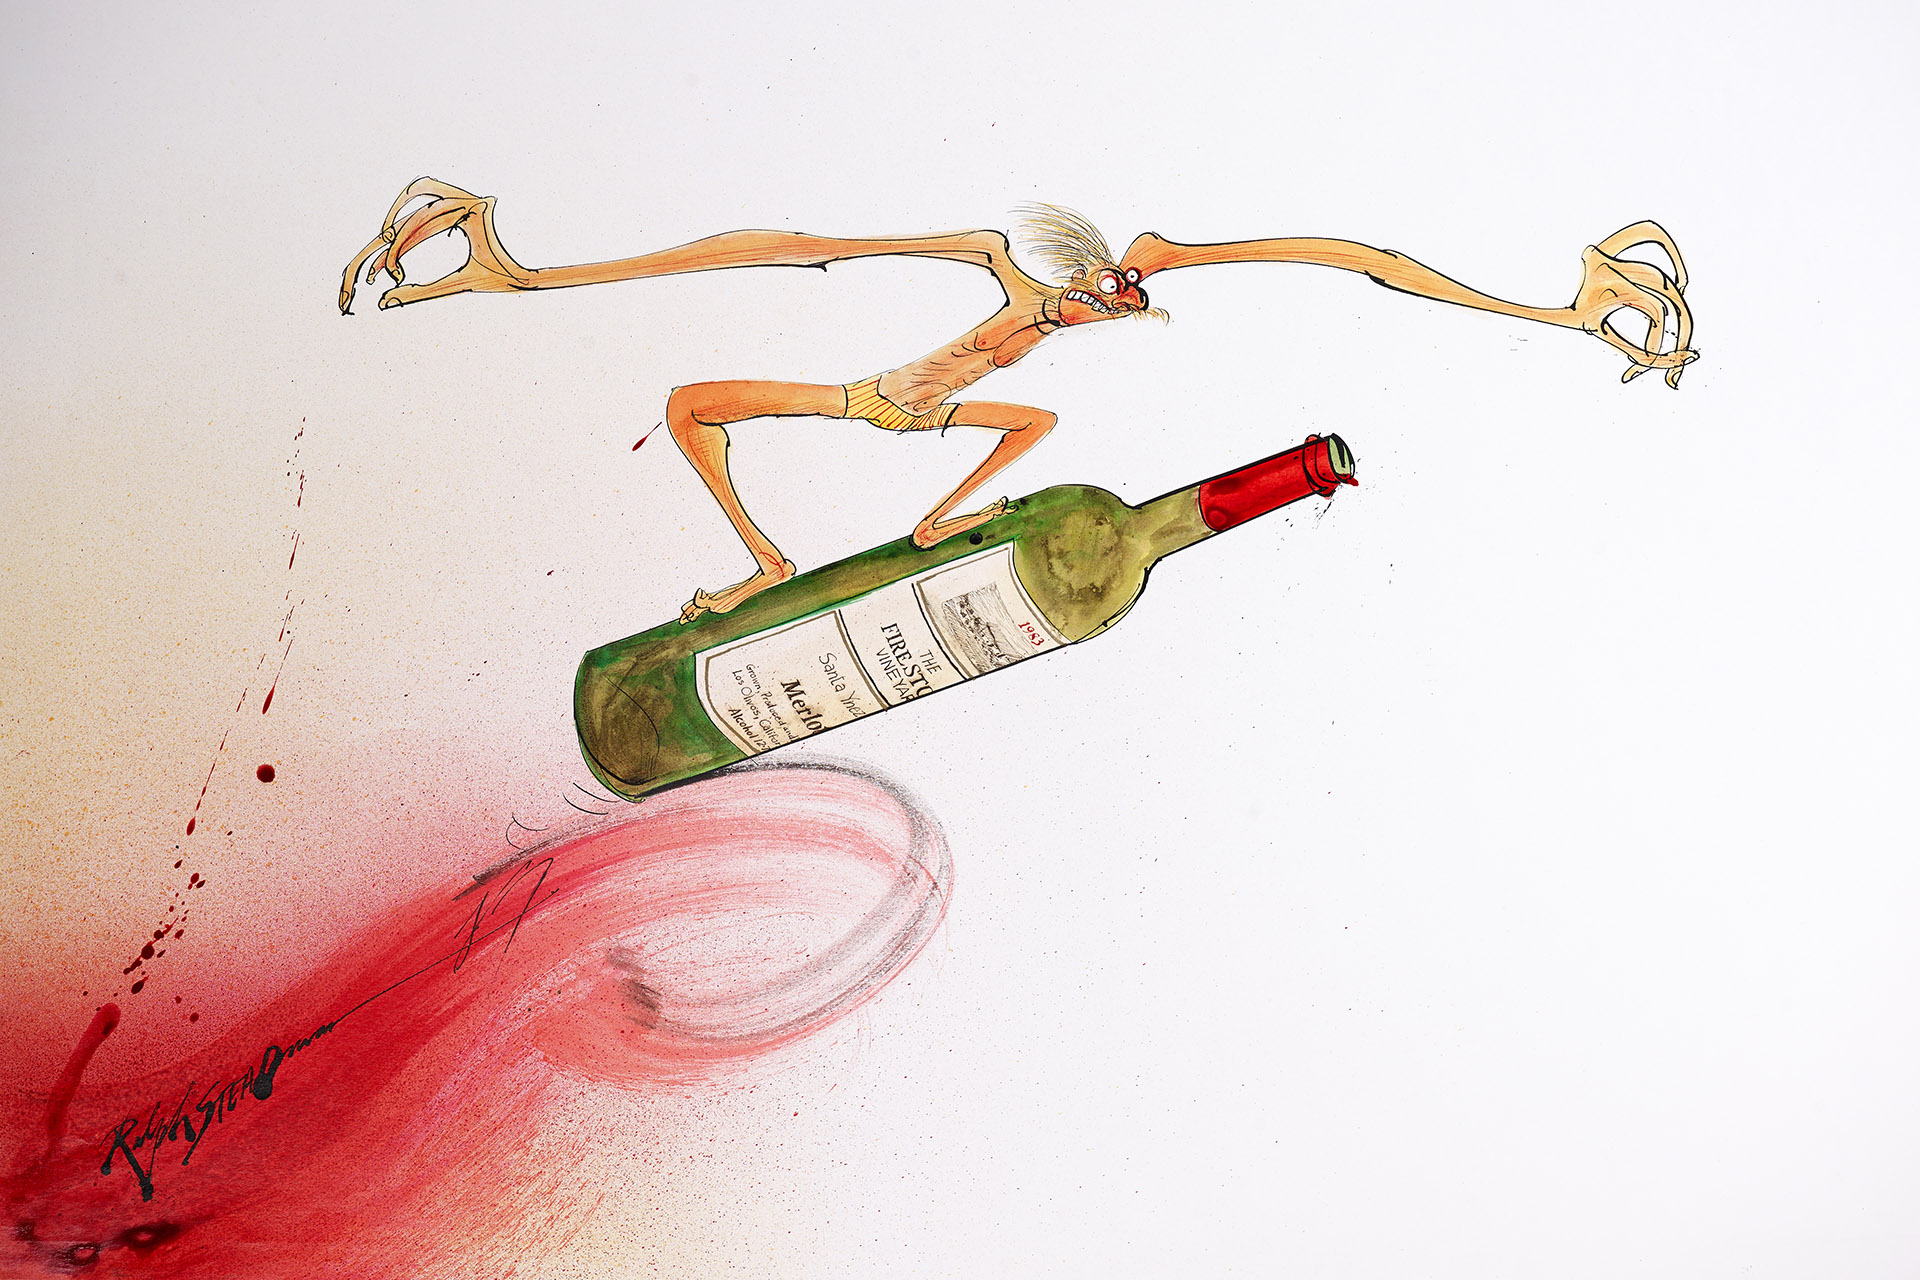 Illustration of man surfing on wine bottle by Ralph Steadman